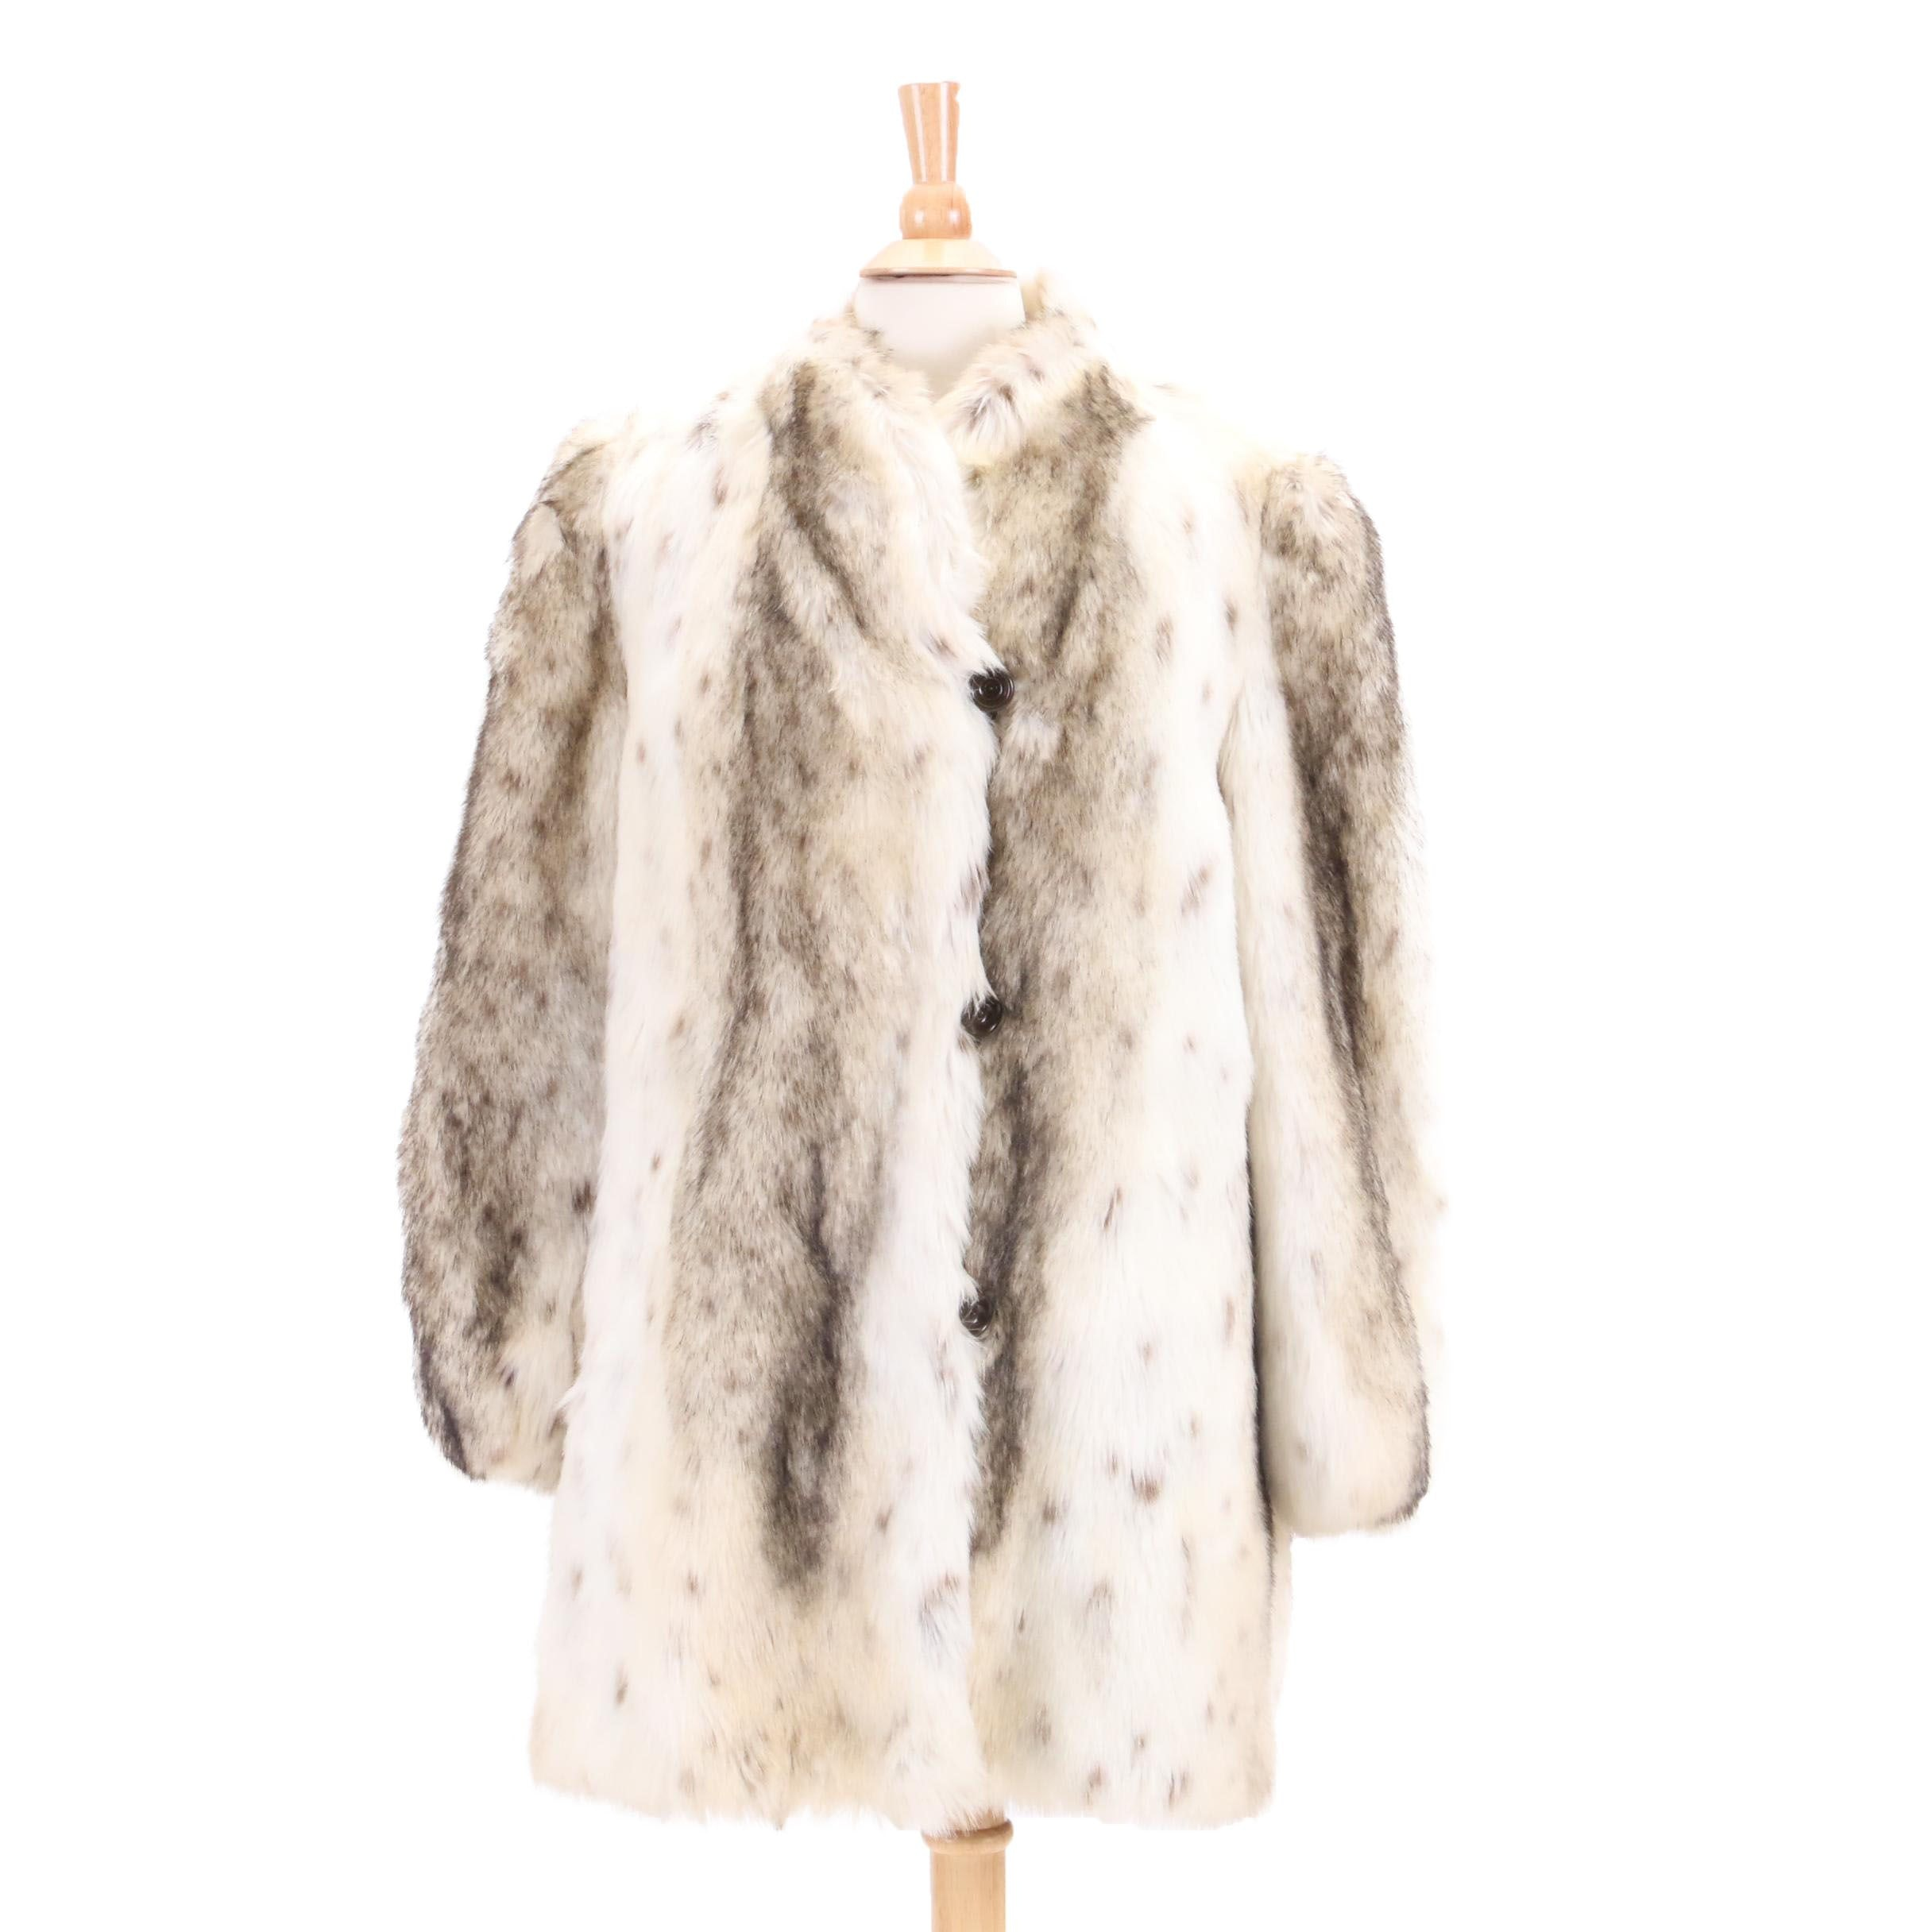 Vintage Gidding Jenny Lynx-Dyed Faux Fur Coat